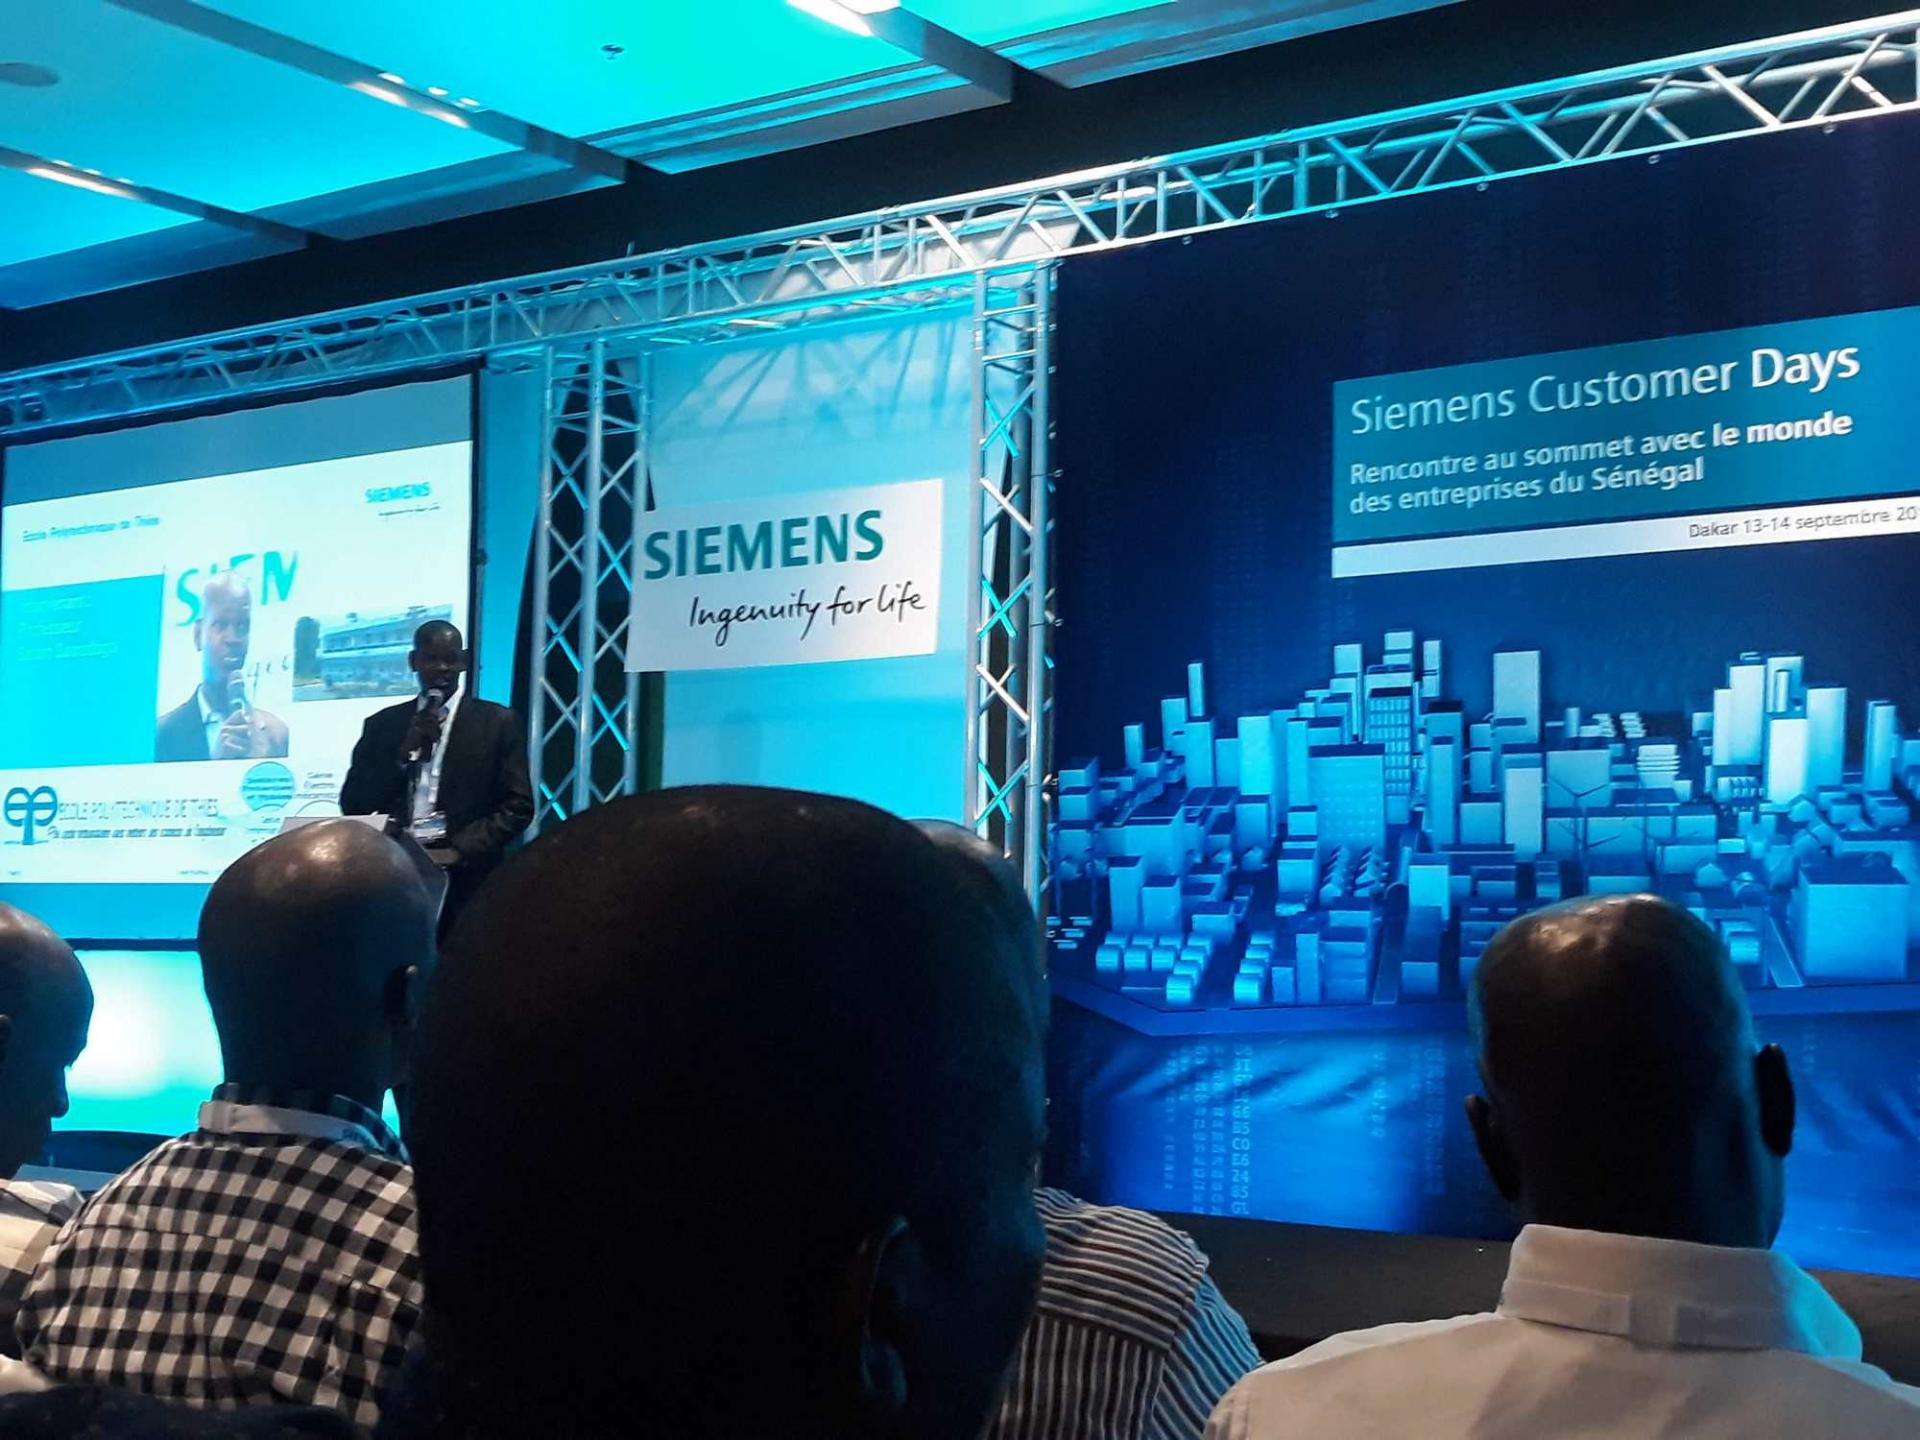 Siemens customer day senegal